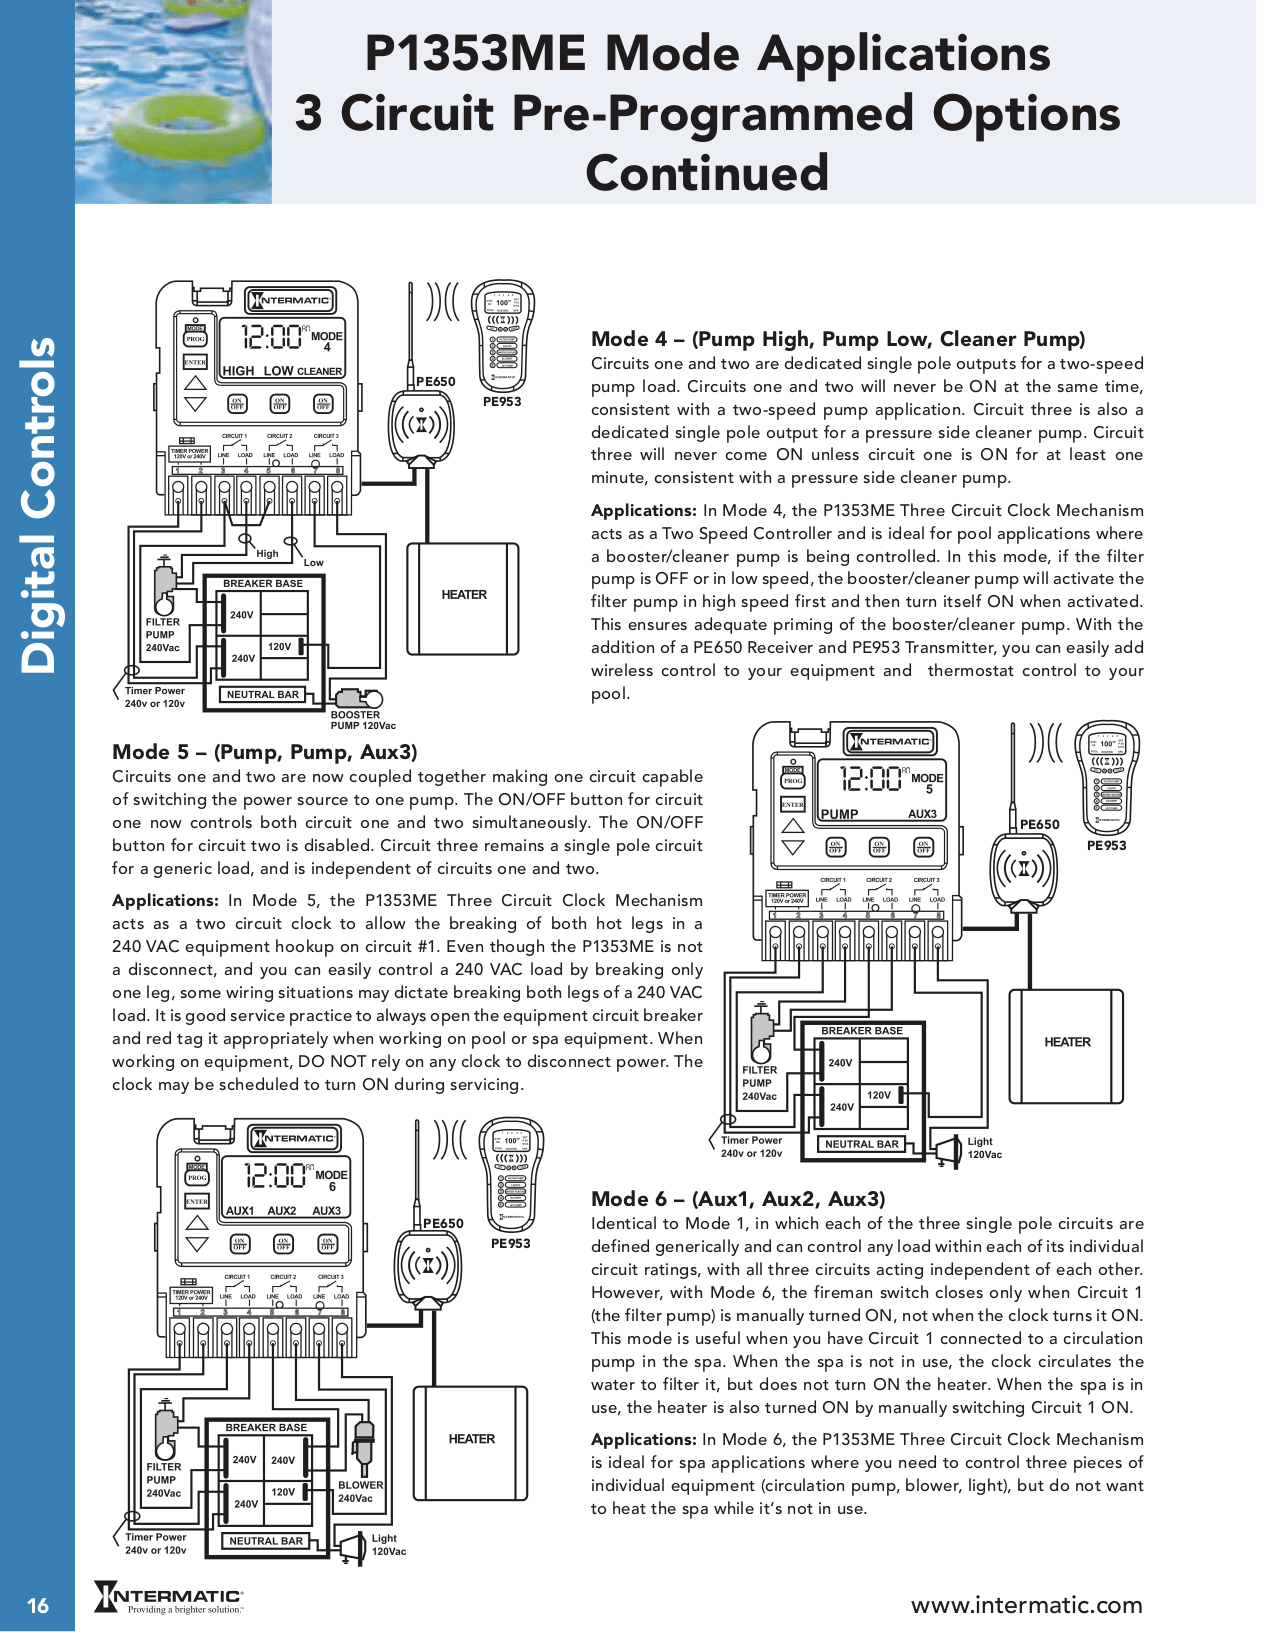 Intermatic P1353 wiring diagrams.pdf 2?resize=665%2C861 tork photocell 2001 wiring diagram wiring diagram tork photocell 2001 wiring diagram at readyjetset.co